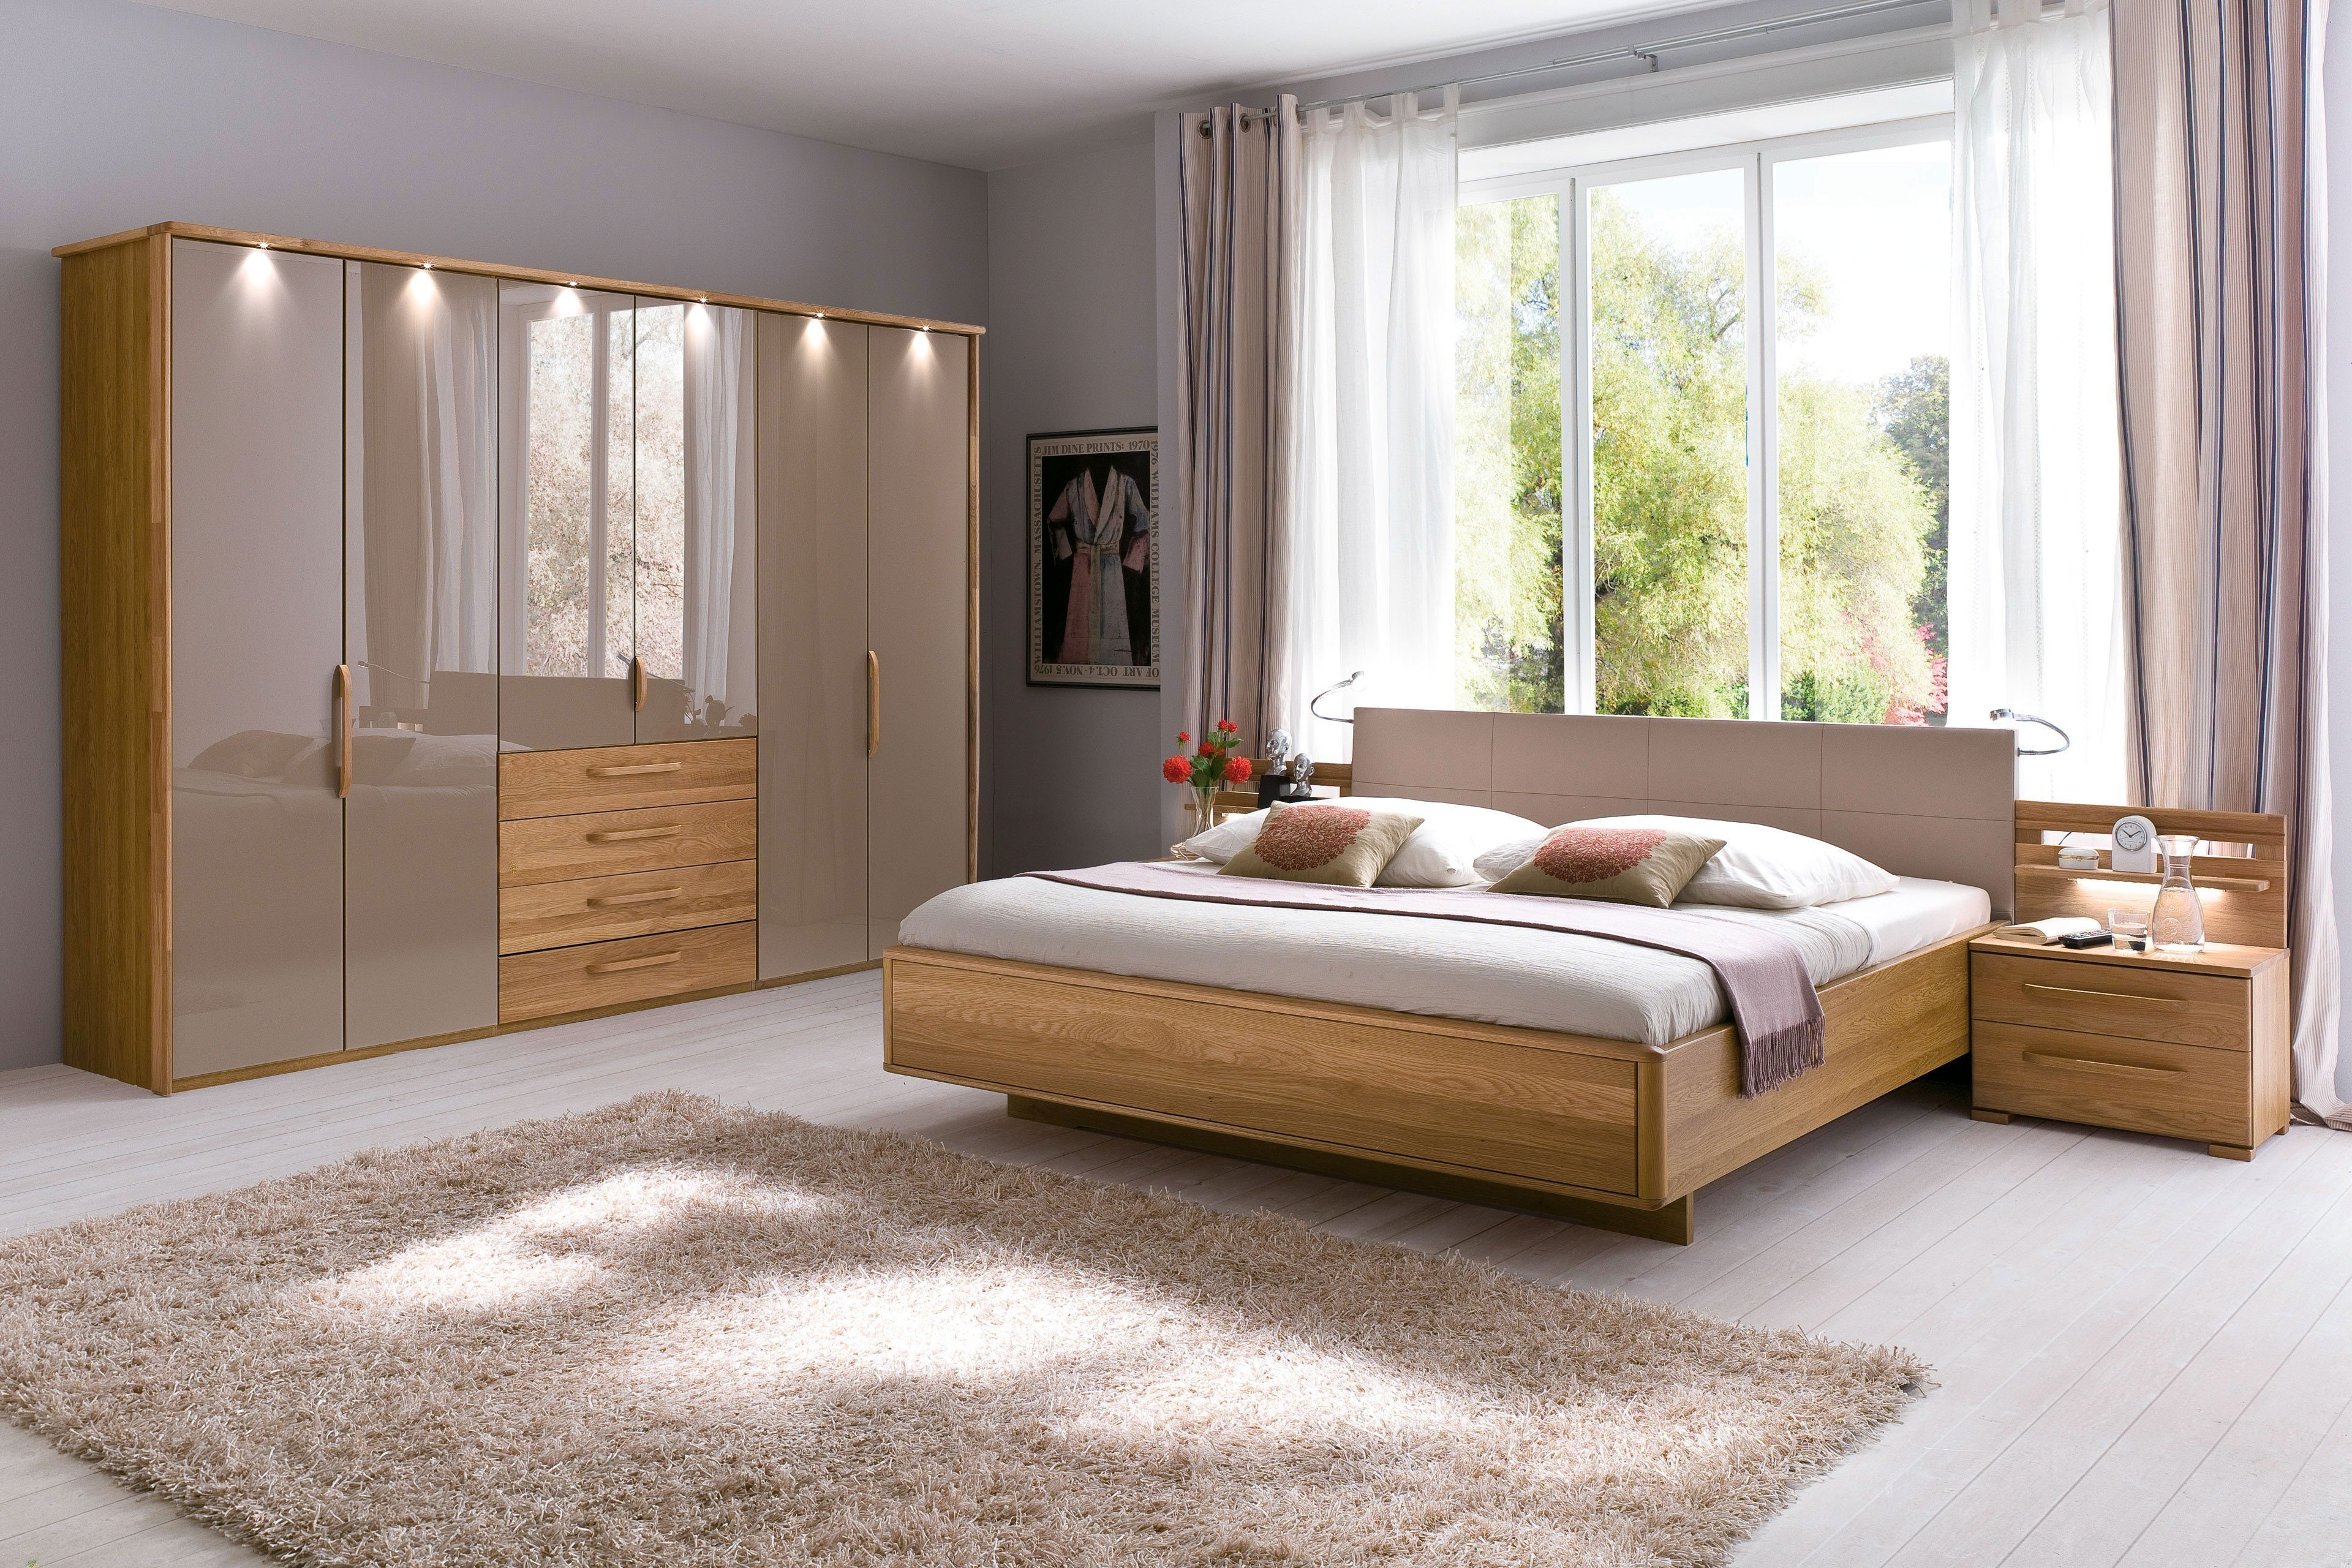 schlafzimmer schranke hulsta marken schlafzimmer. Black Bedroom Furniture Sets. Home Design Ideas